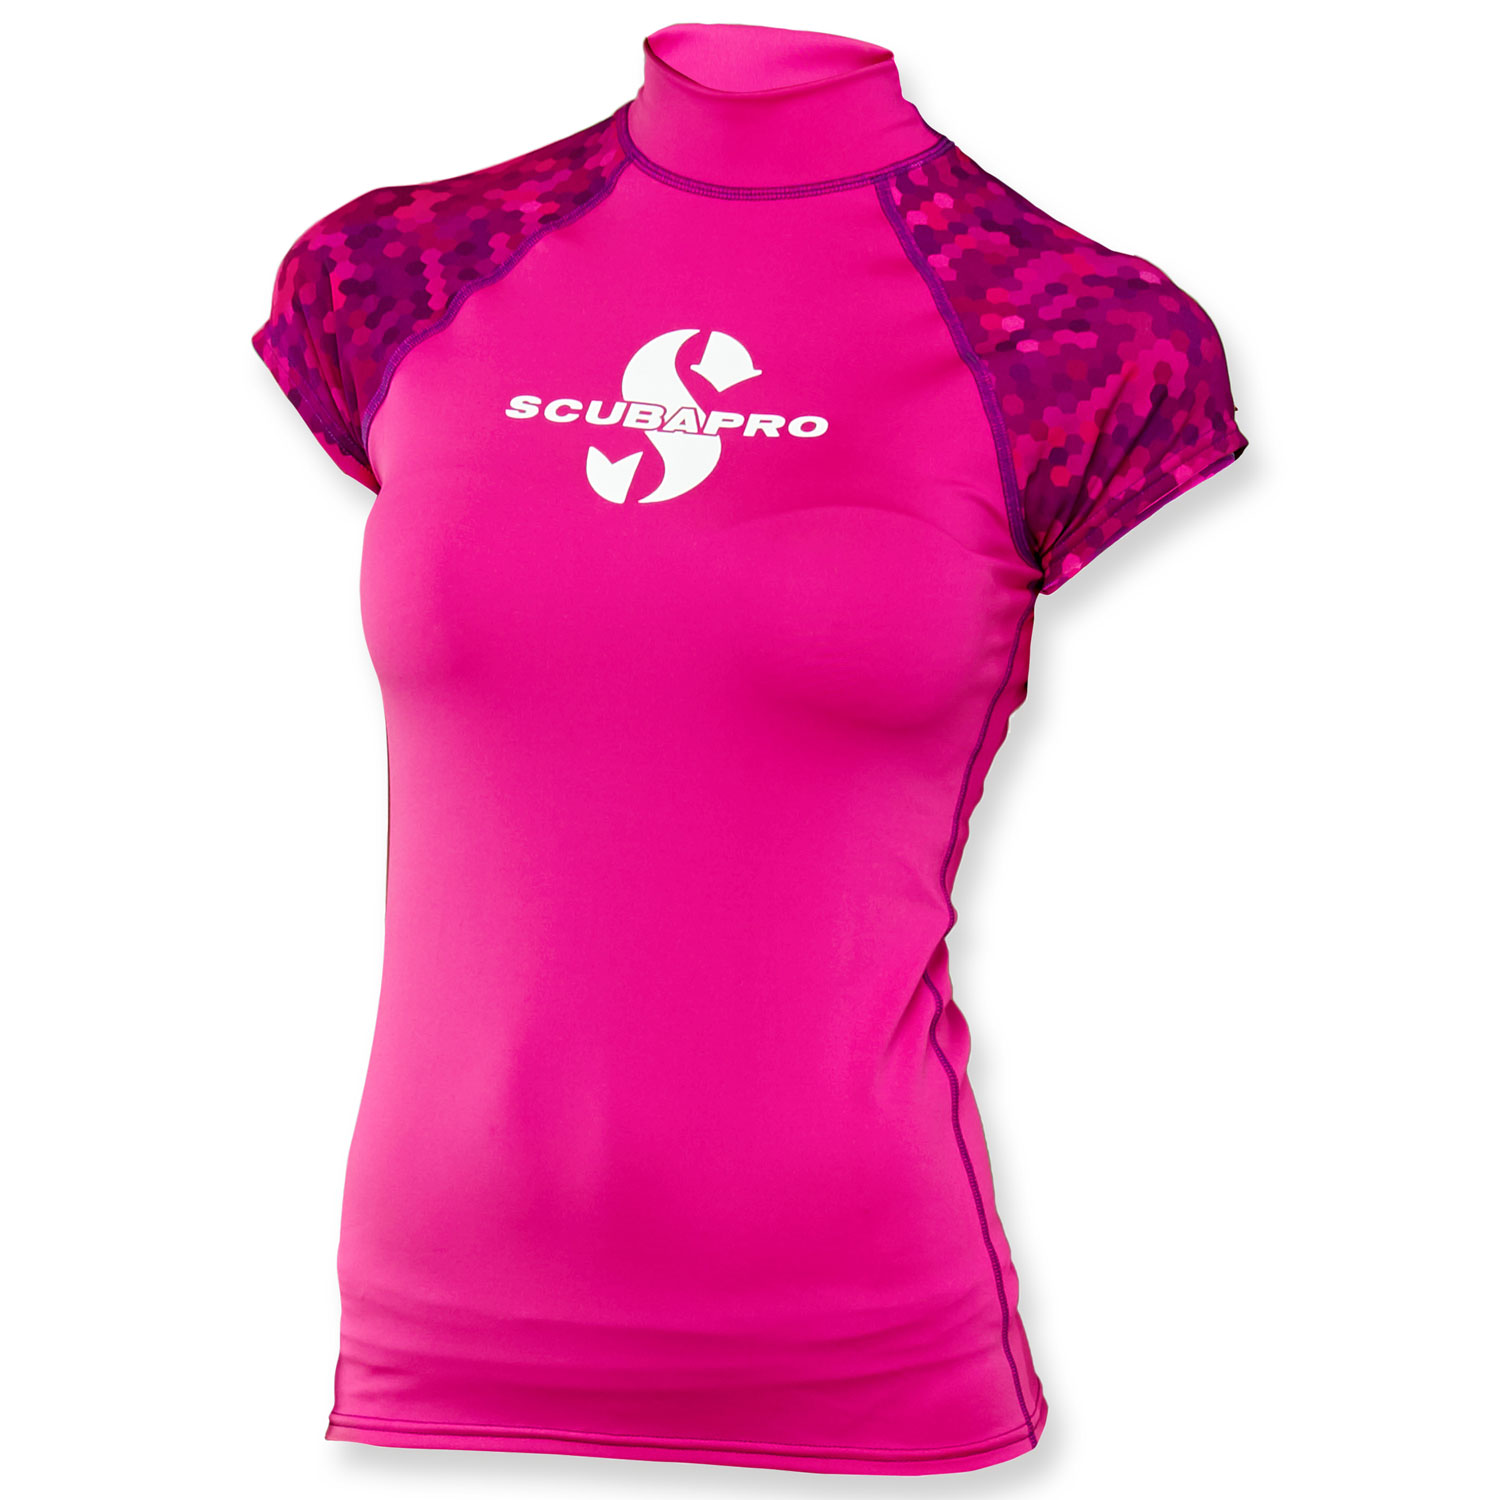 scubapro rash guard flamingo damen kurzarm upf 50 g nstig kaufen. Black Bedroom Furniture Sets. Home Design Ideas